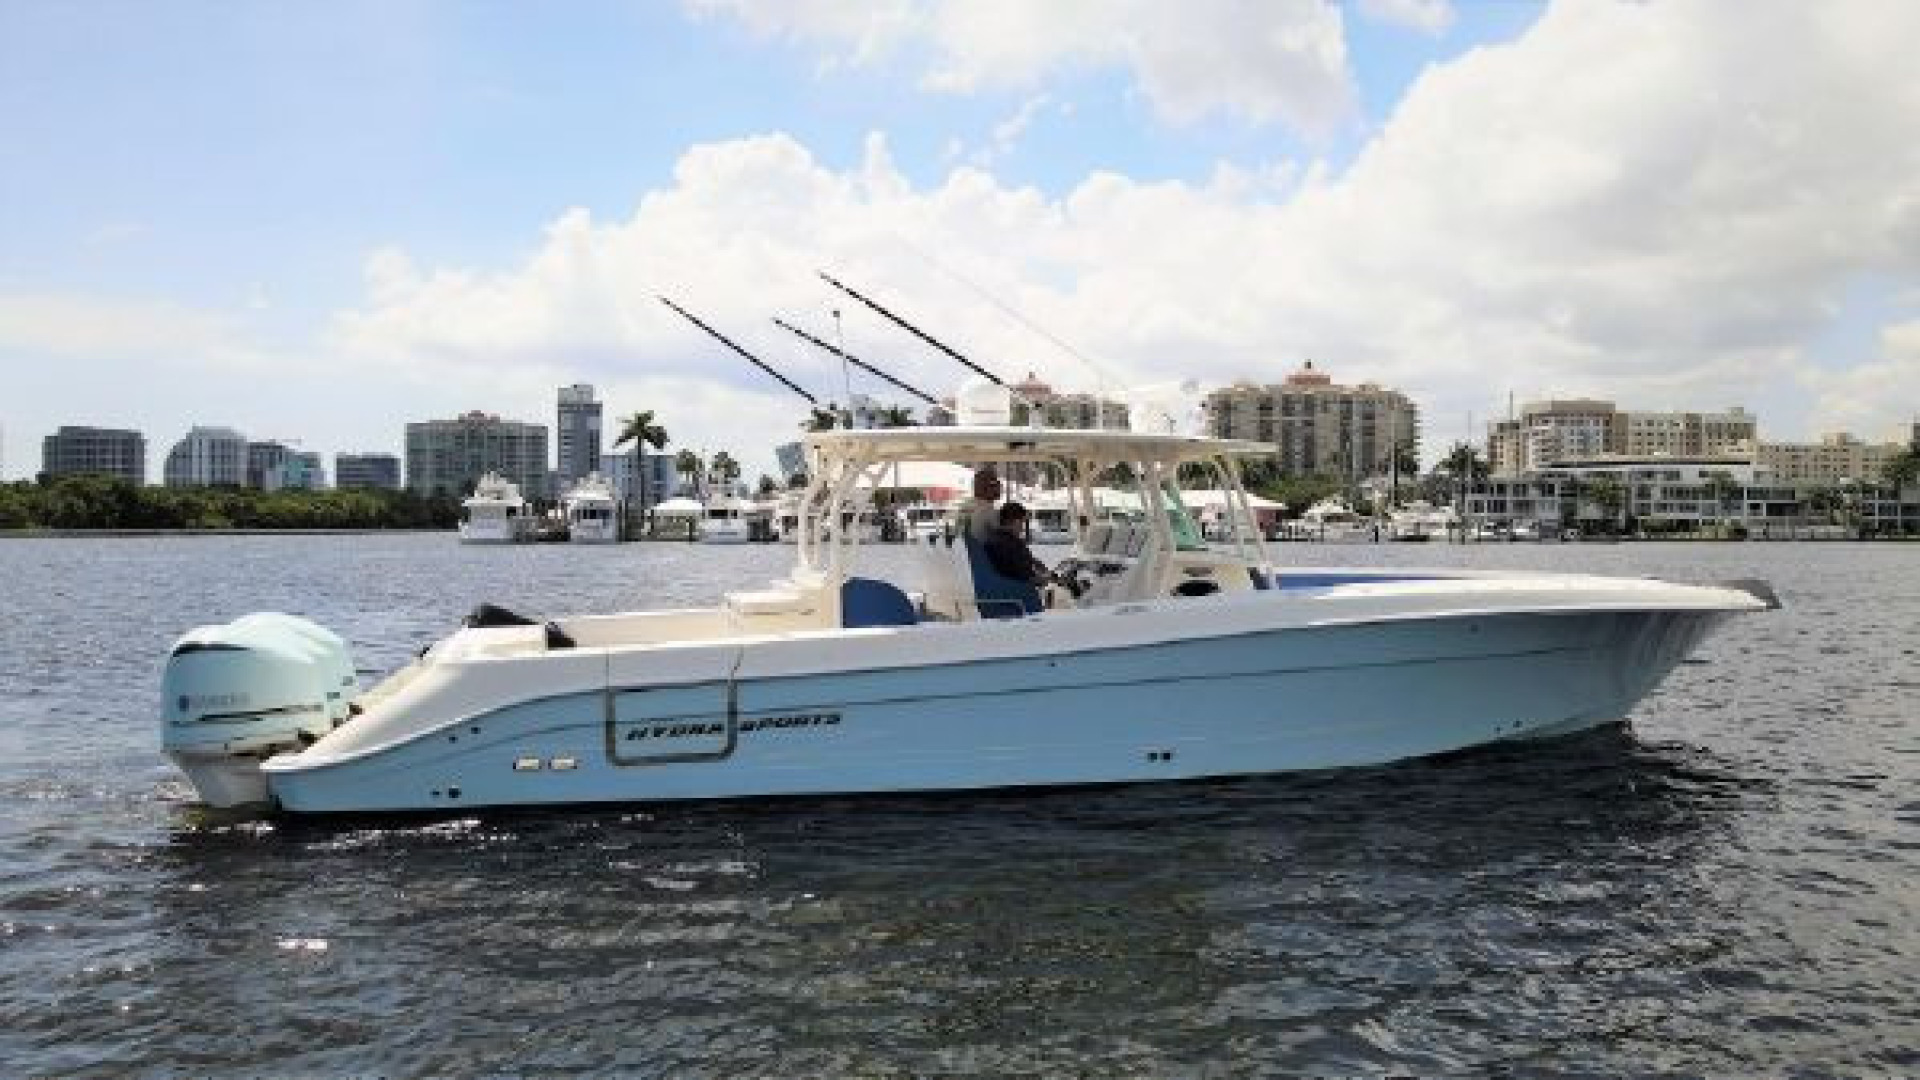 Hydra-Sports-42 Center Console 4200 SF 2011 -Fort Lauderdale-Florida-United States-1564125 | Thumbnail